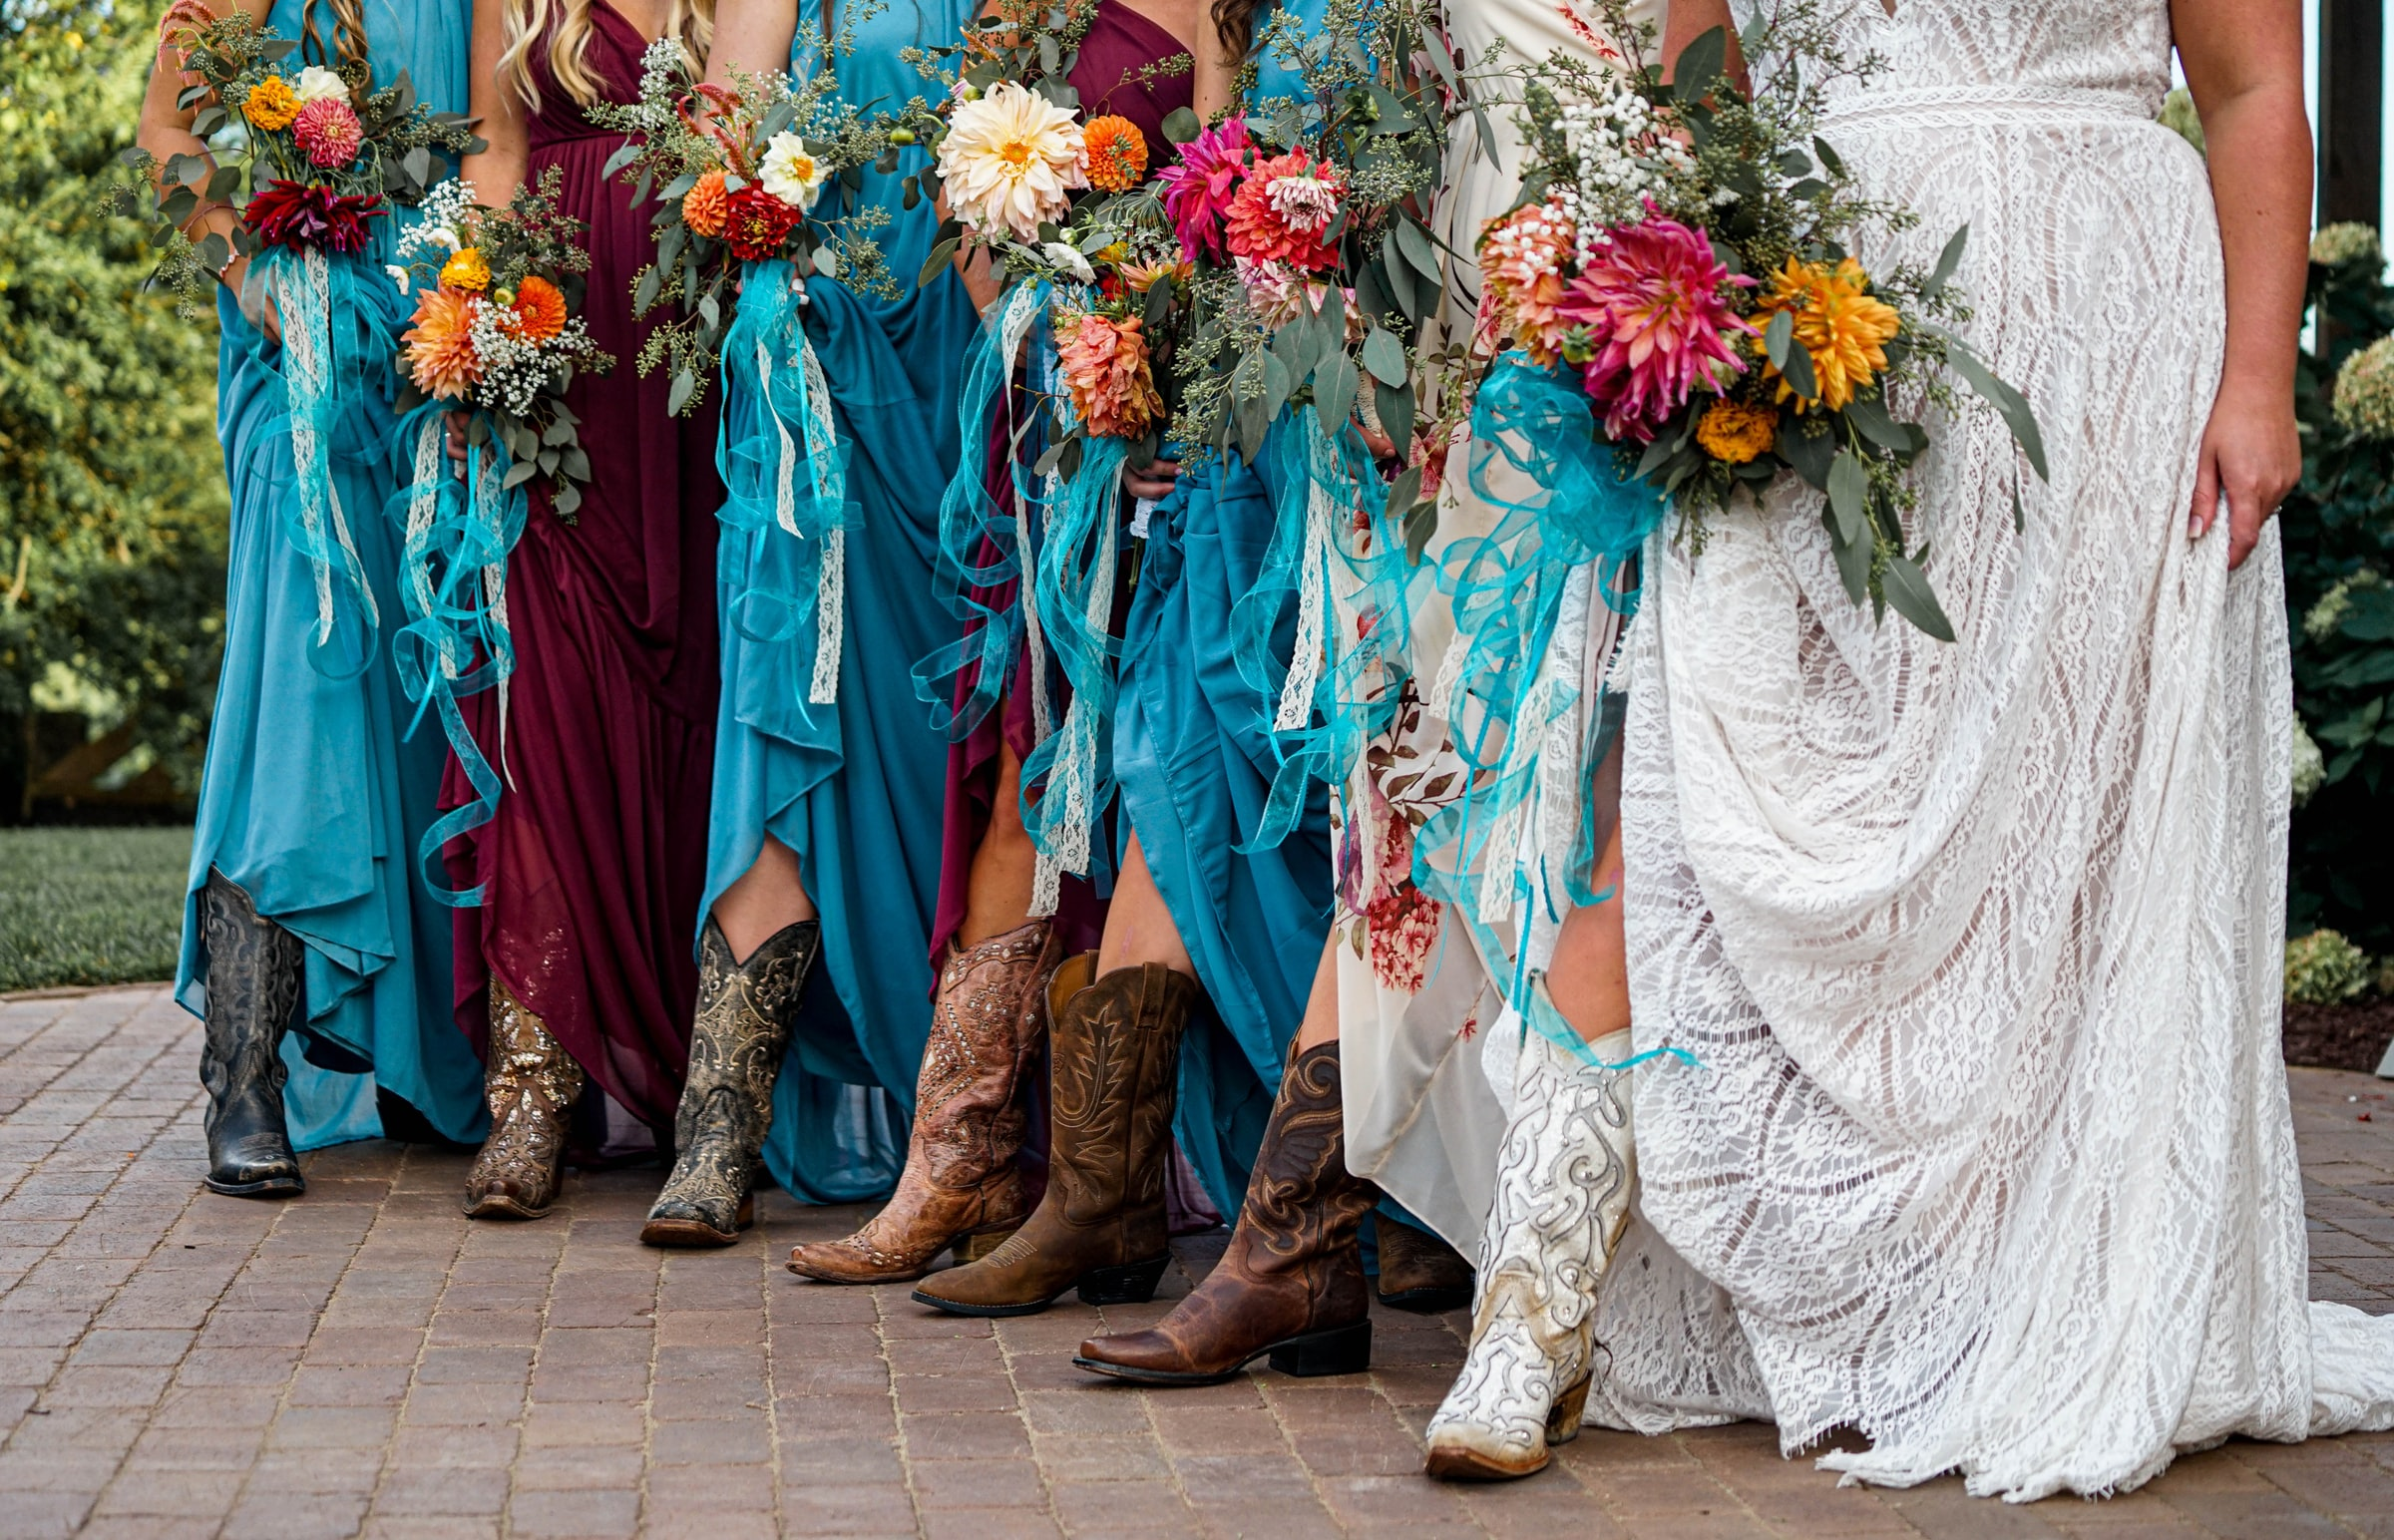 brides maids all dressed in long dresses with cowboy boots on